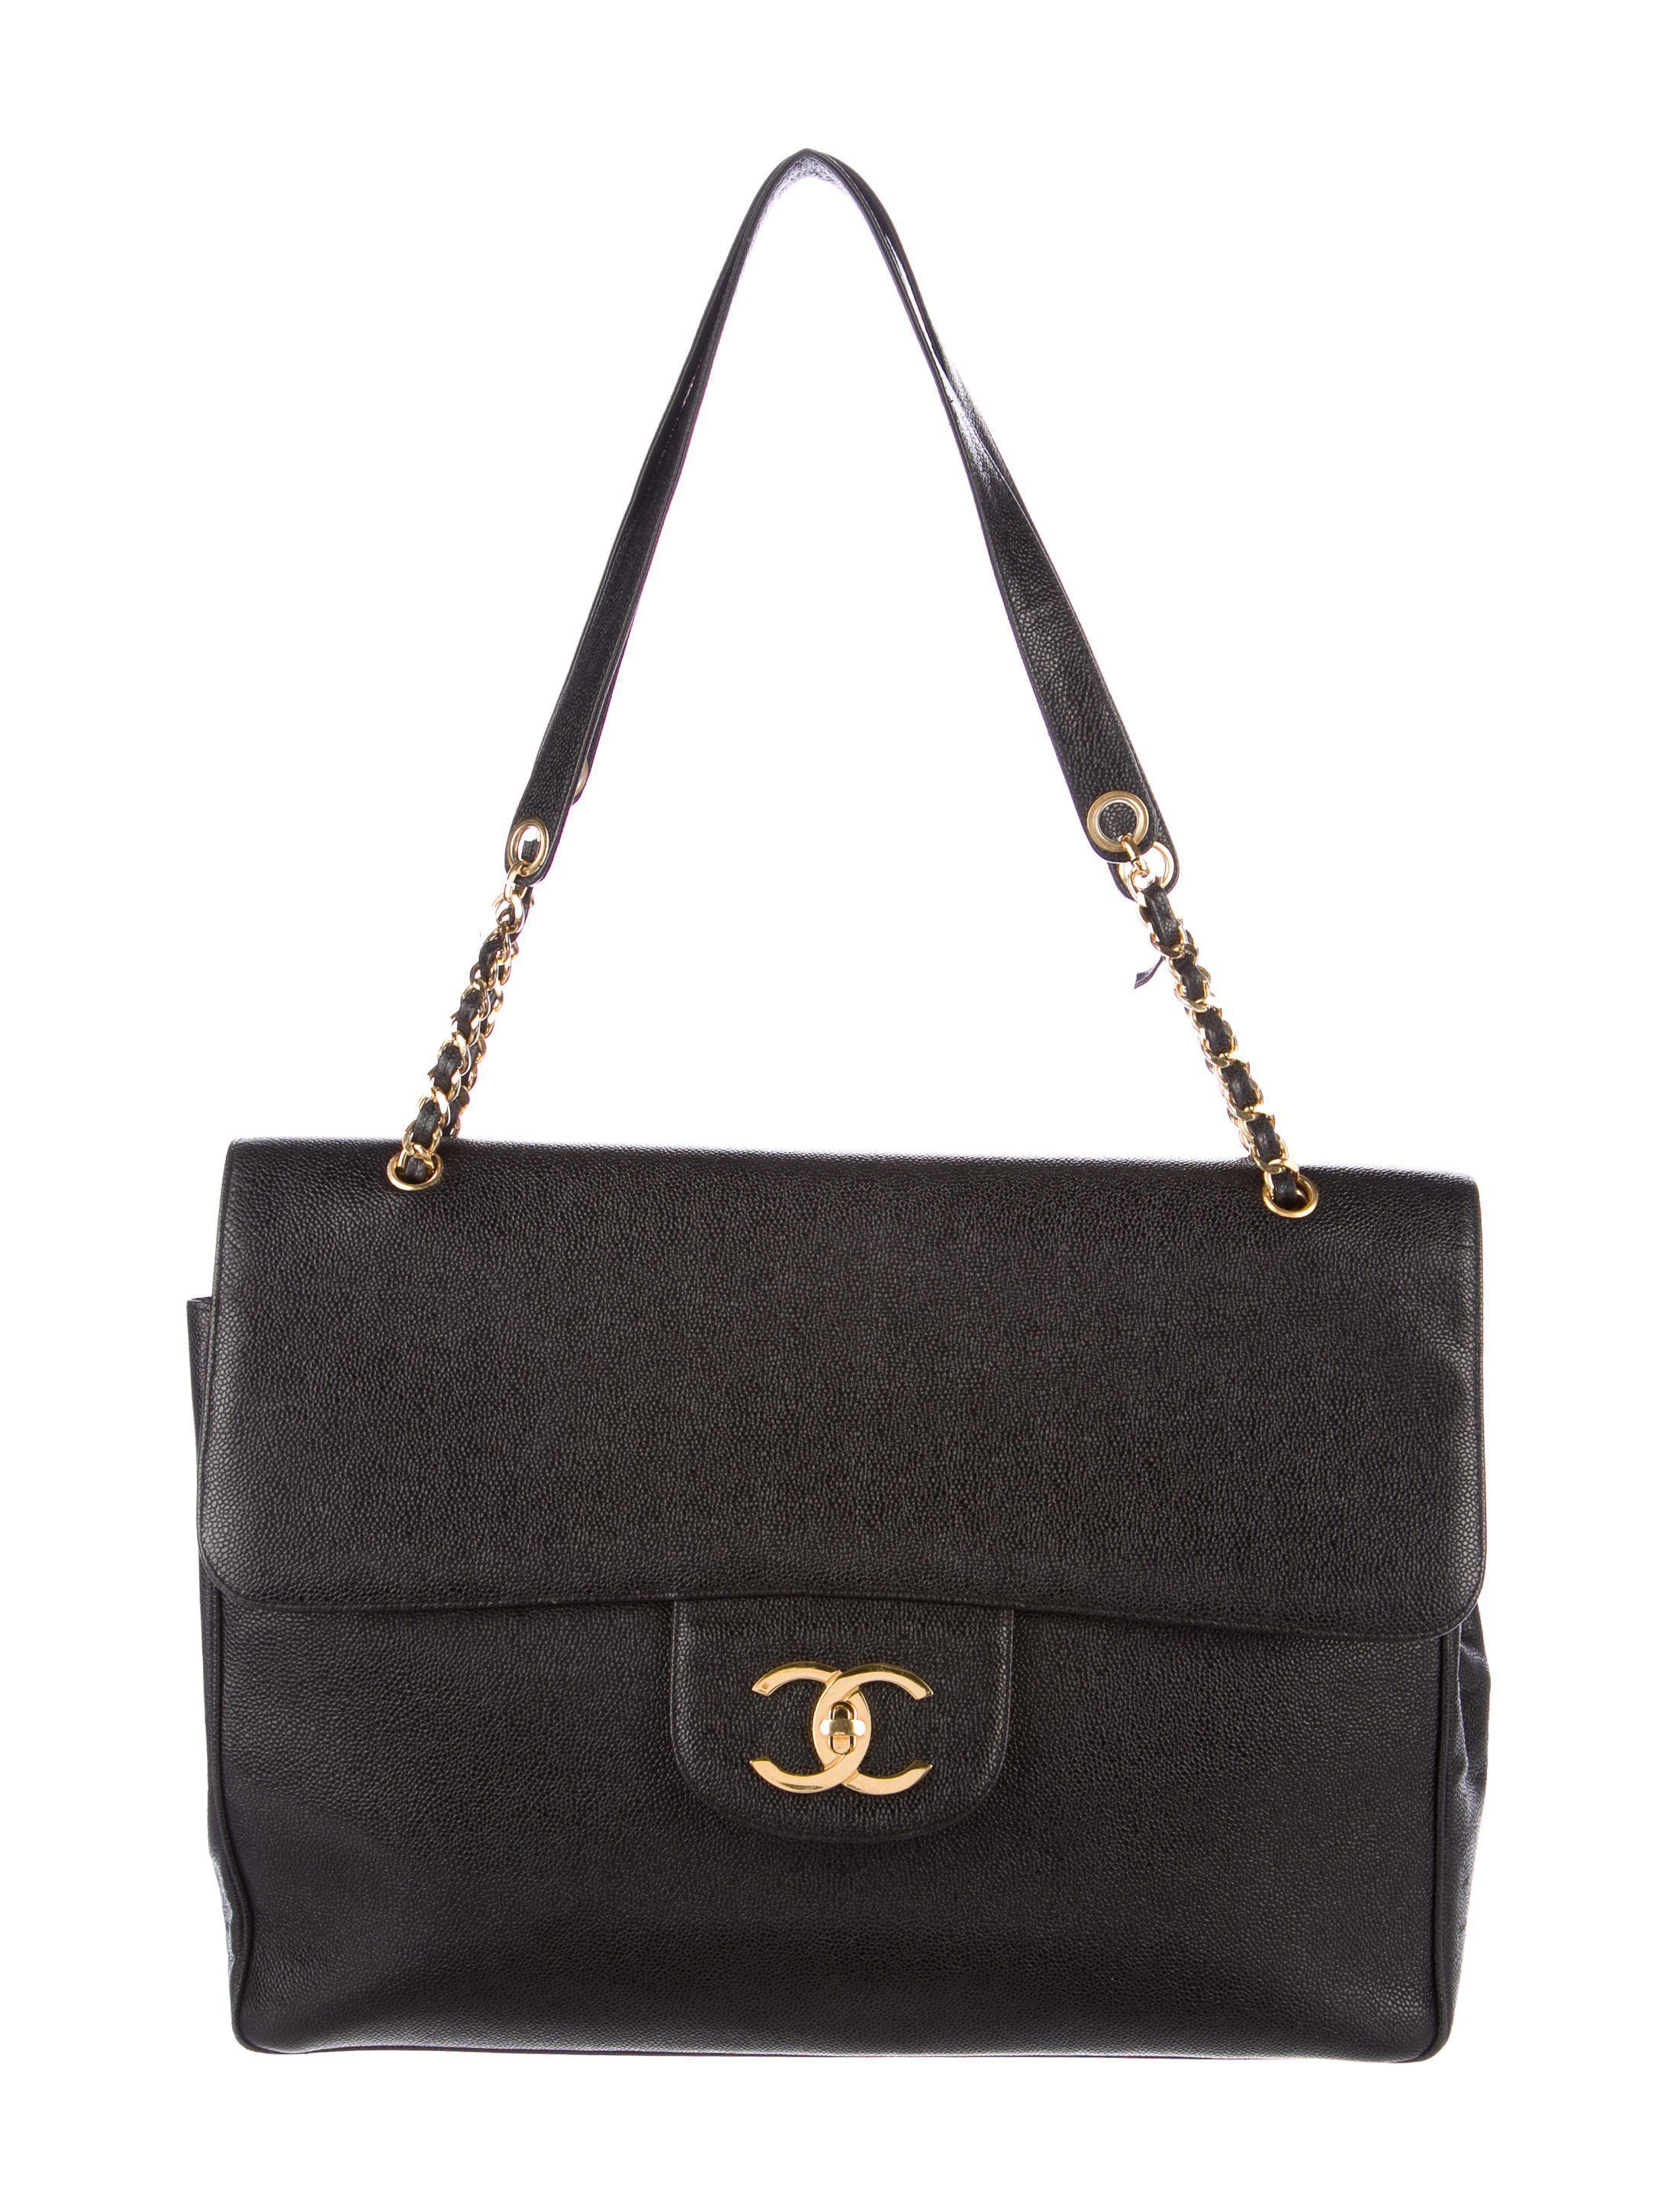 Purses And Bags · Pocket · Summer · Black Caviar leather Chanel Supermodel  XL Tote with gold-tone hardware 6a5b44c23625d